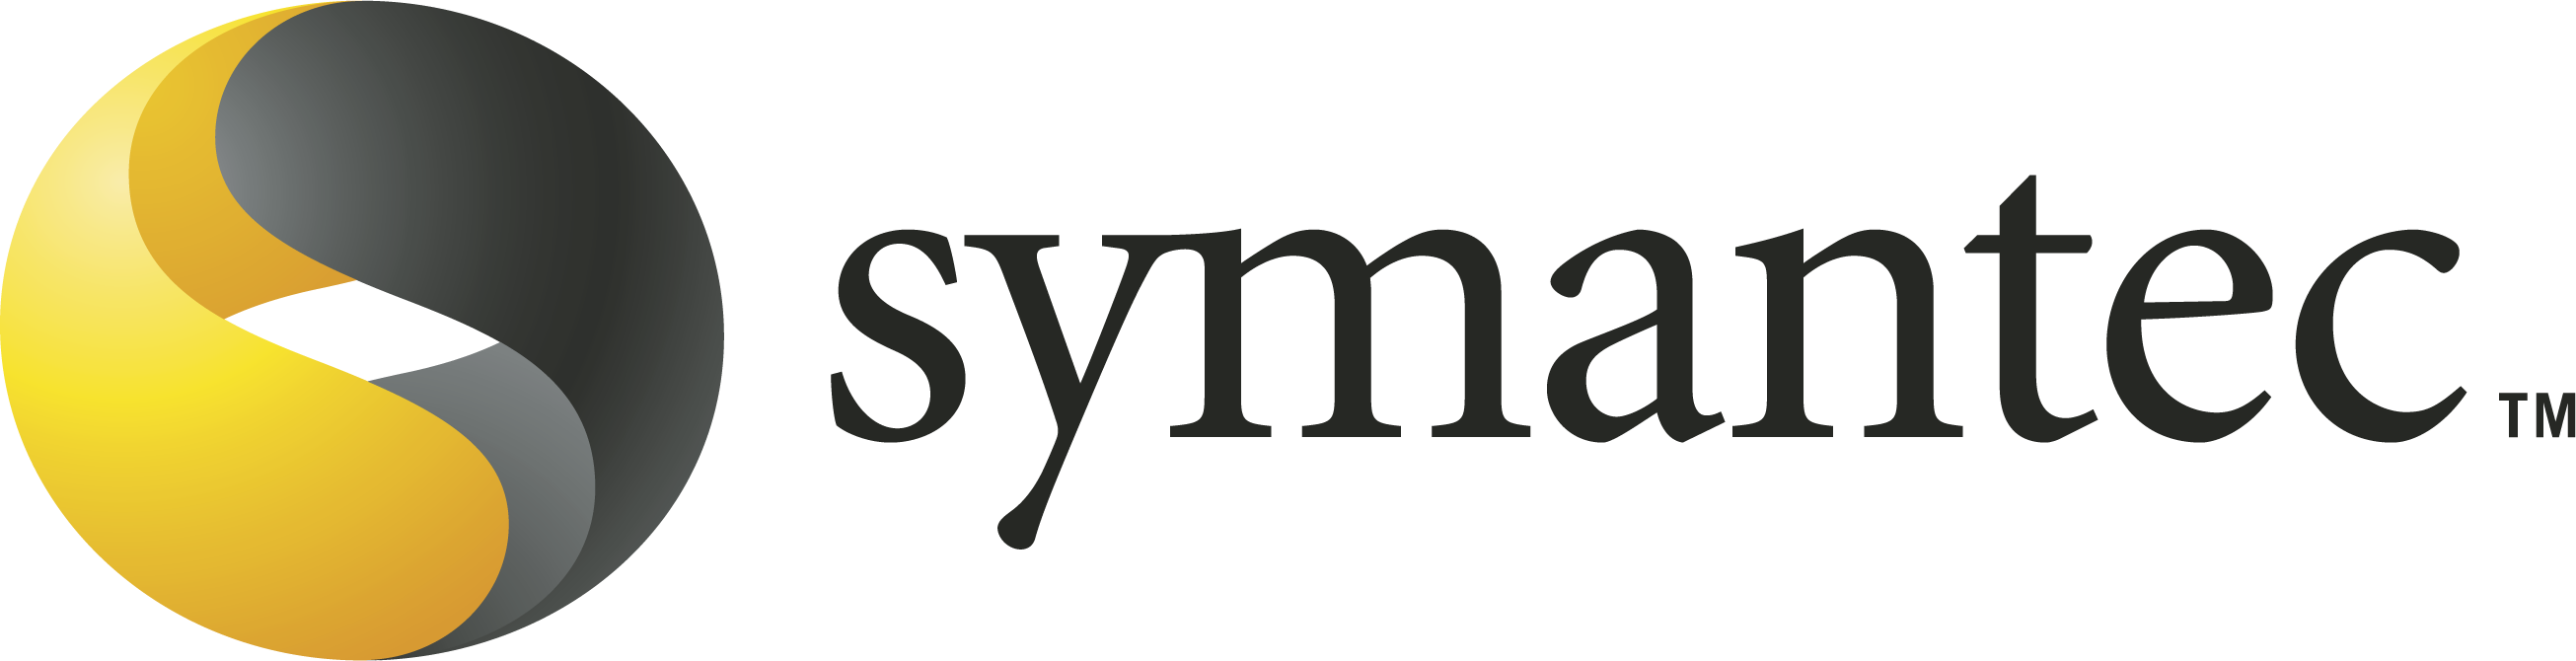 Symantec Logos | Full HD Pictures